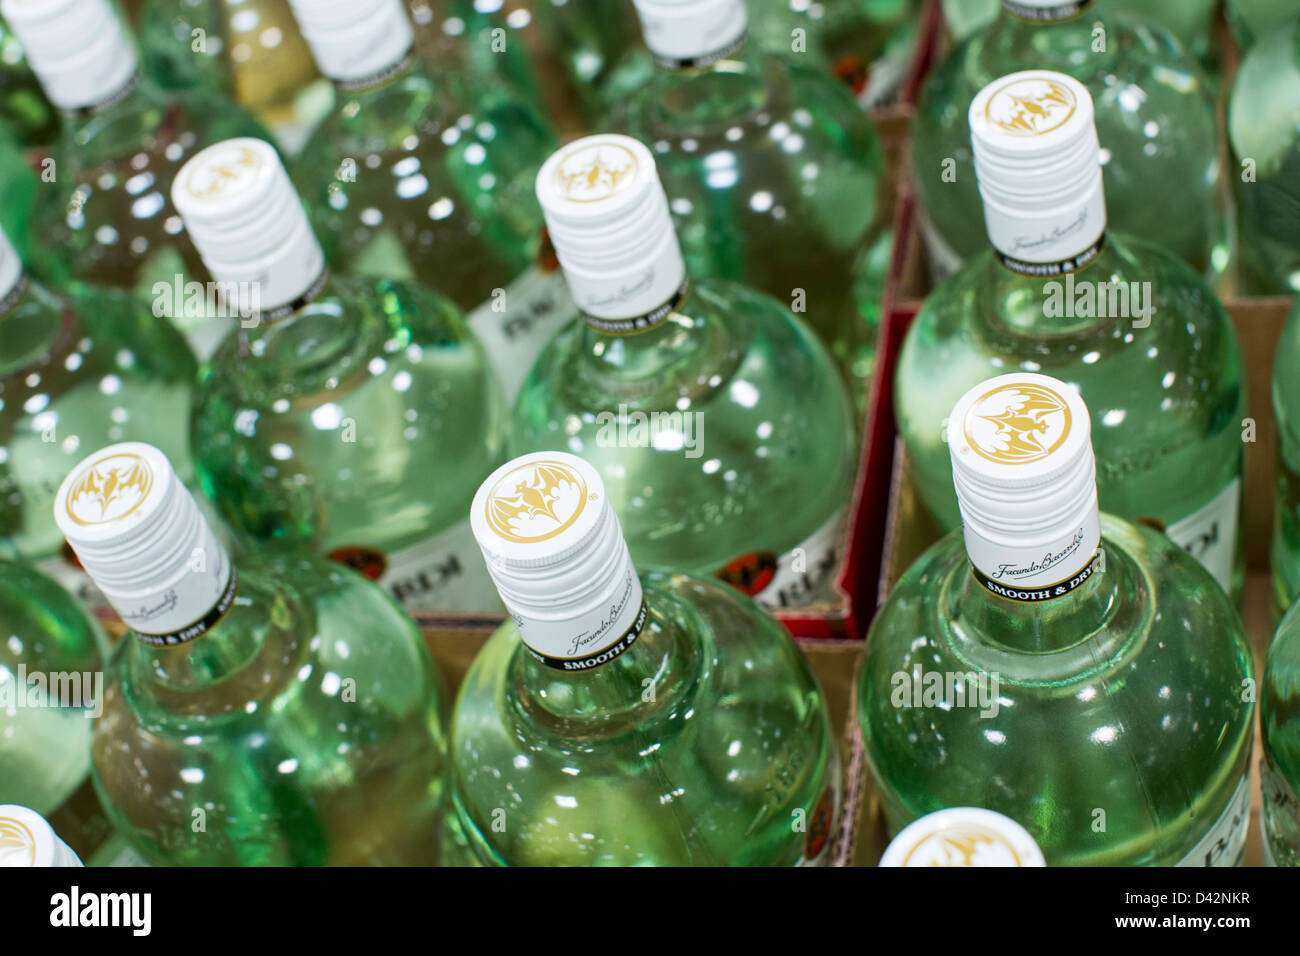 Bacardi rum on display at a costco wholesale warehouse club stock bacardi rum on display at a costco wholesale warehouse club stock photo 54150651 alamy thecheapjerseys Images